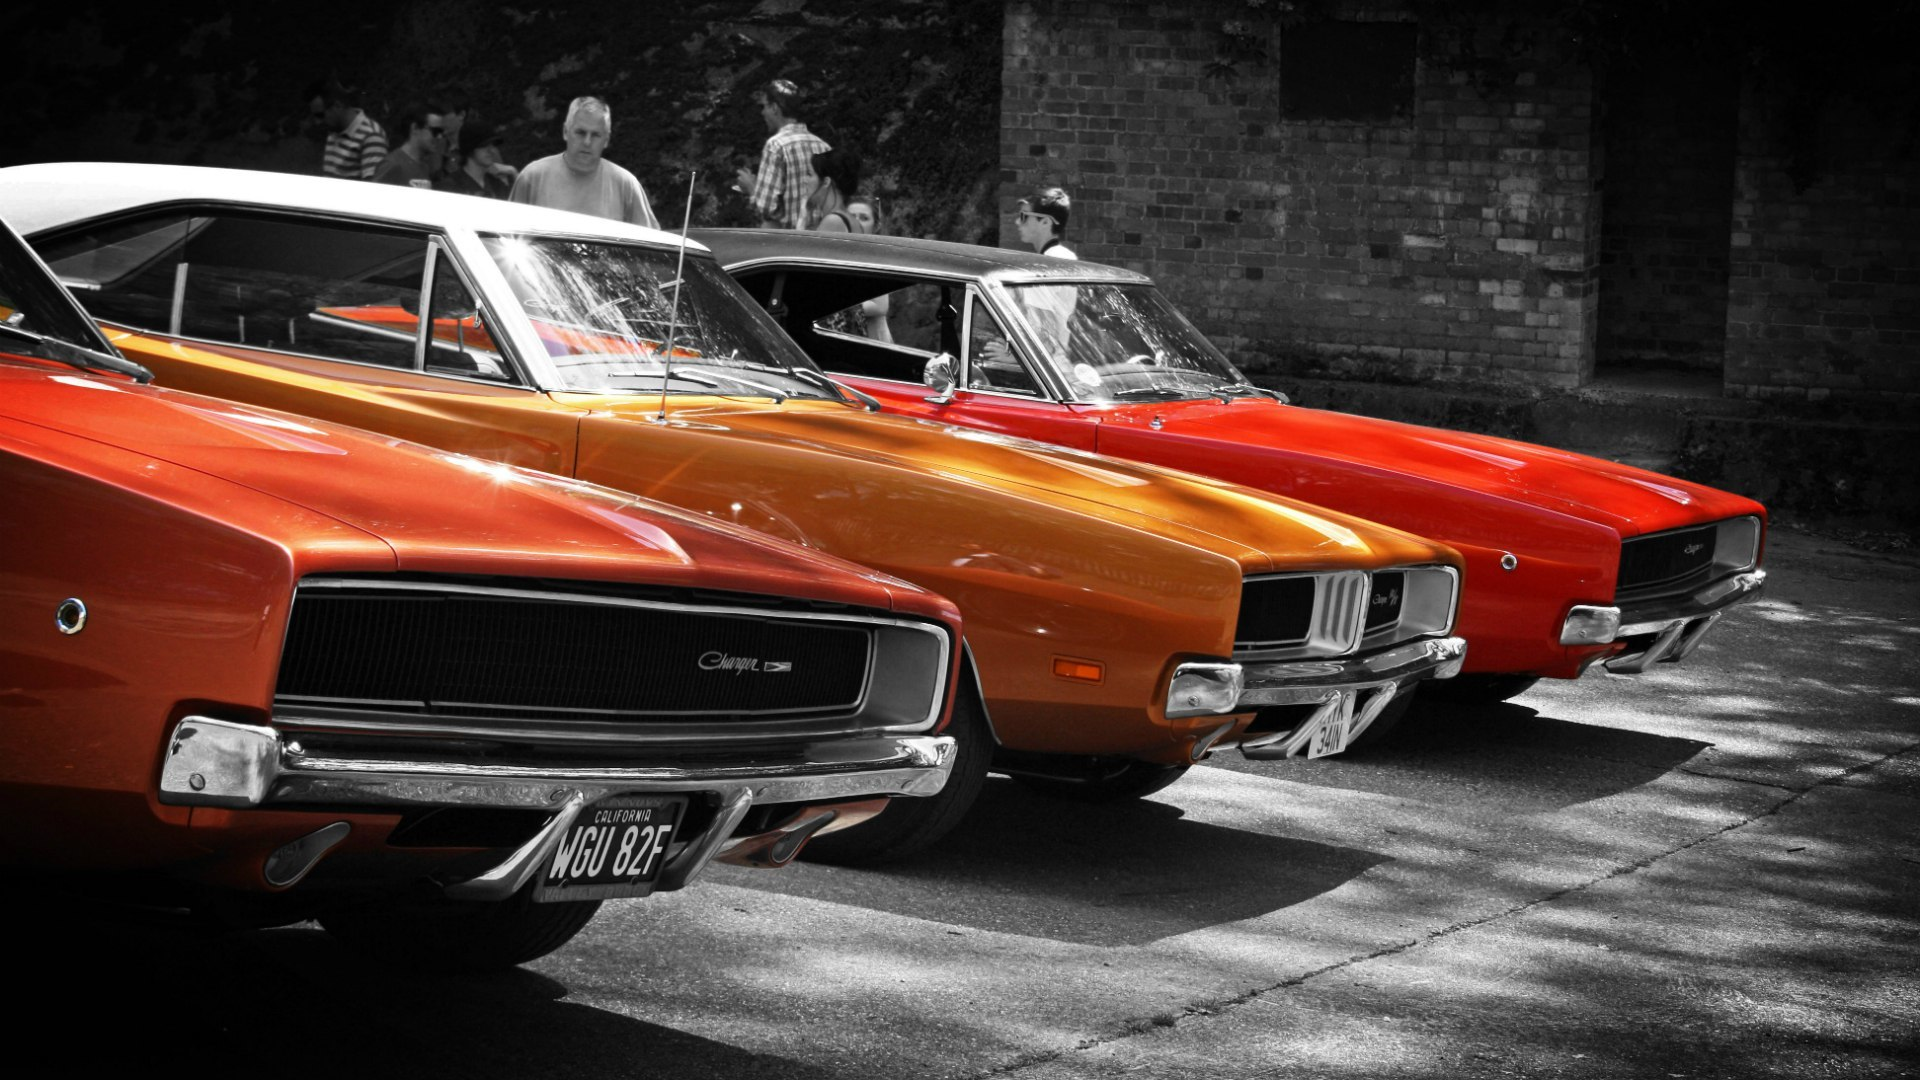 1969 Dodge Charger Rt >> 1969 Dodge Charger RT Wallpaper - WallpaperSafari